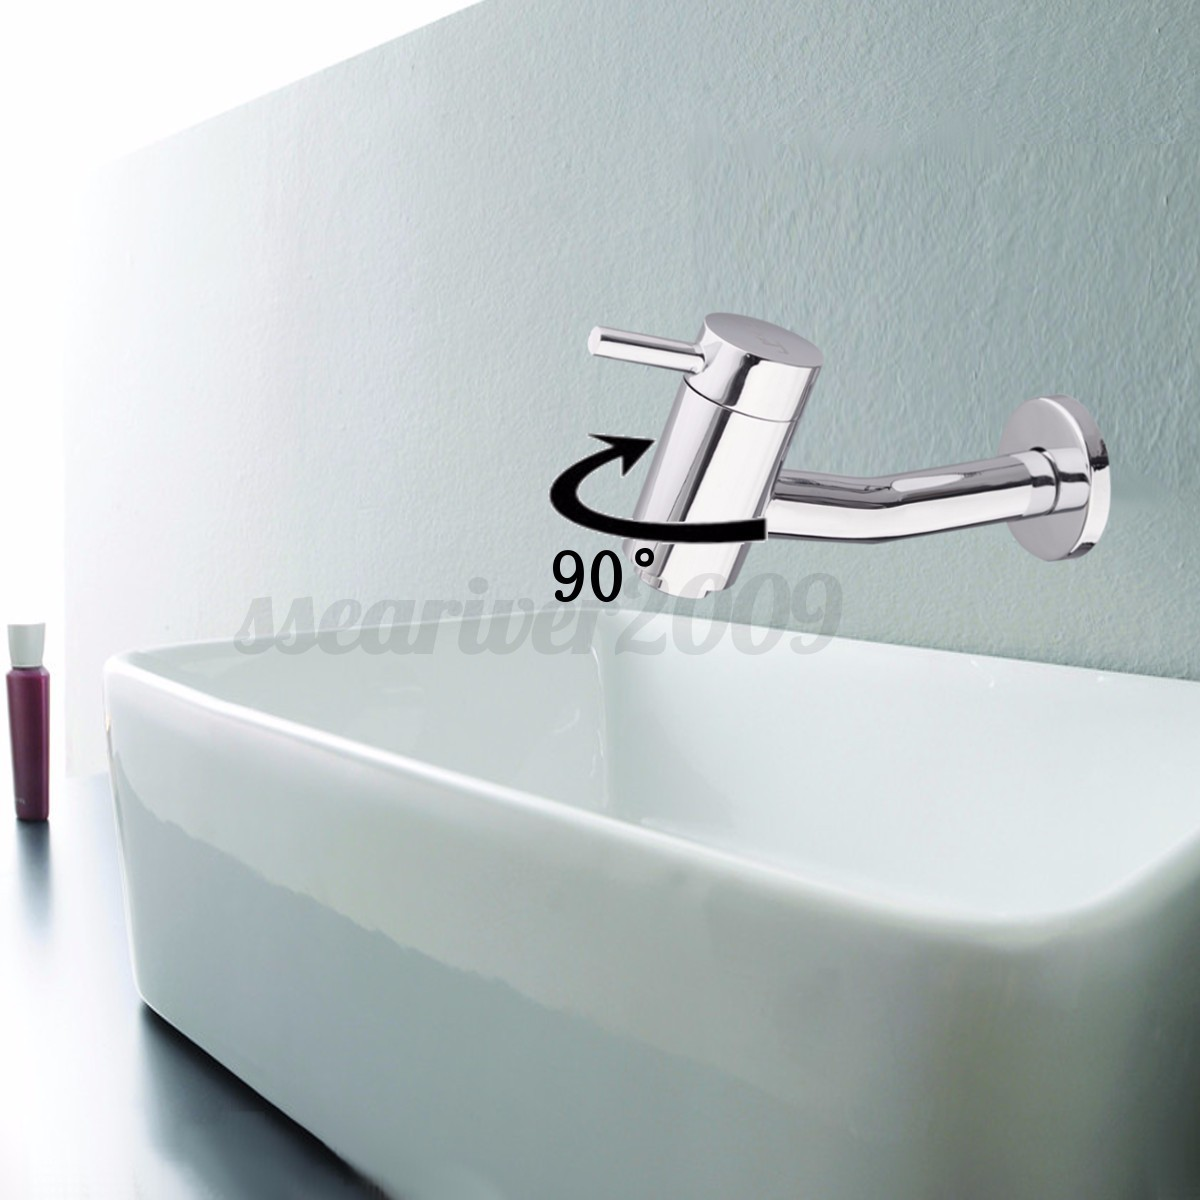 robinet 90 rotatif mural cascade lavabo evier laiton sink tap bassin salle bain ebay. Black Bedroom Furniture Sets. Home Design Ideas